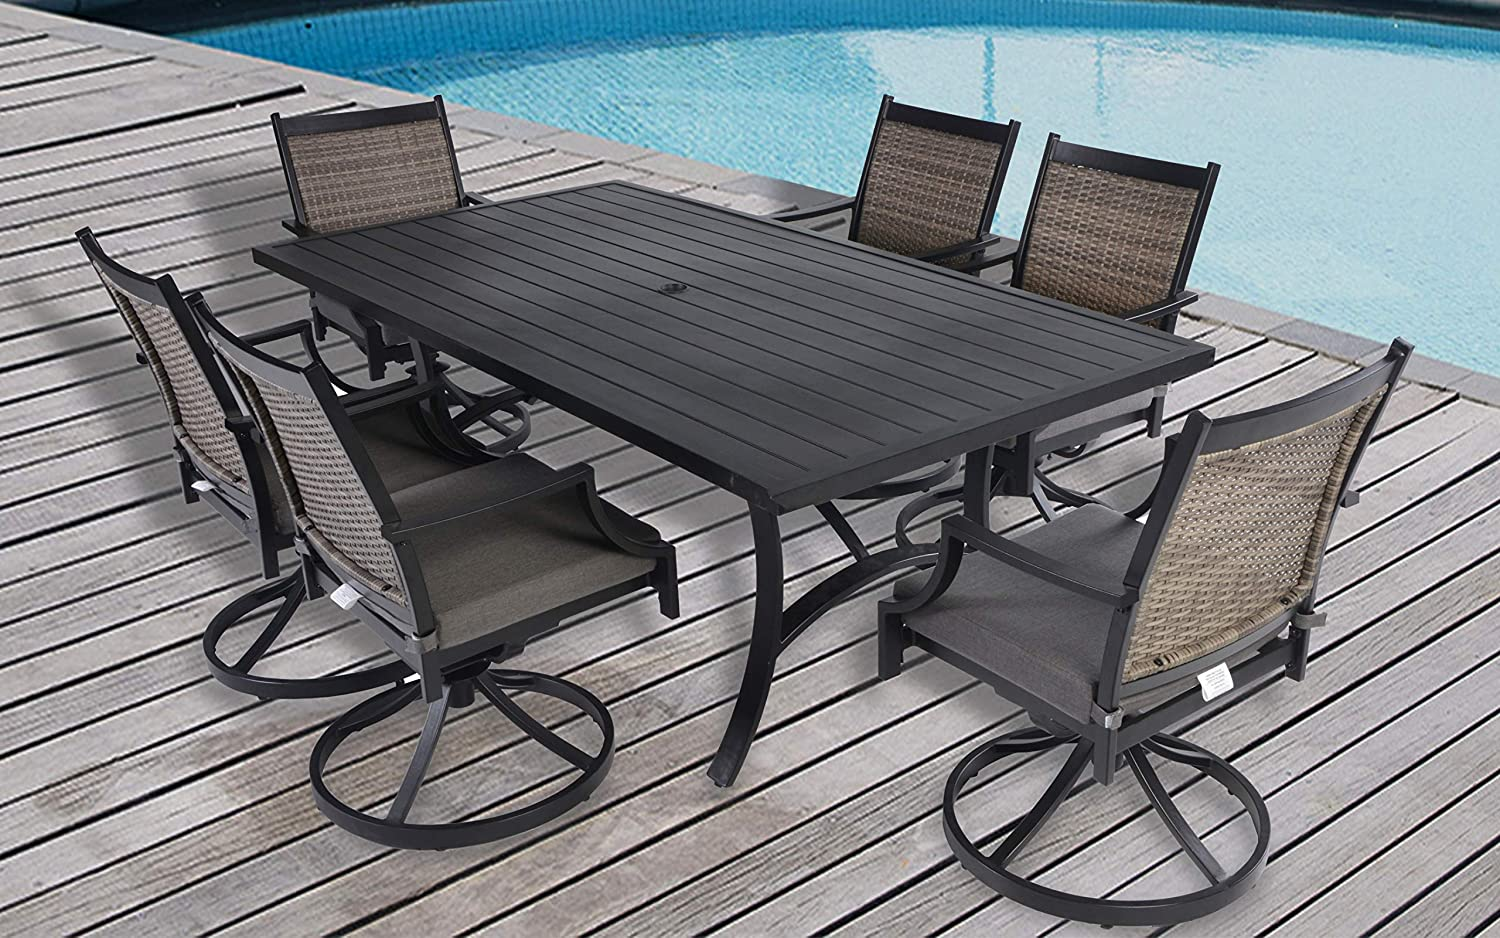 Pebble Lane Living Set of 2 Bronze Weather Resistant Powder Coated Aluminum Wicker Swivel Rocking Patio Dining Chairs with Arms and All Weather Olefin Tan Patio Cushions